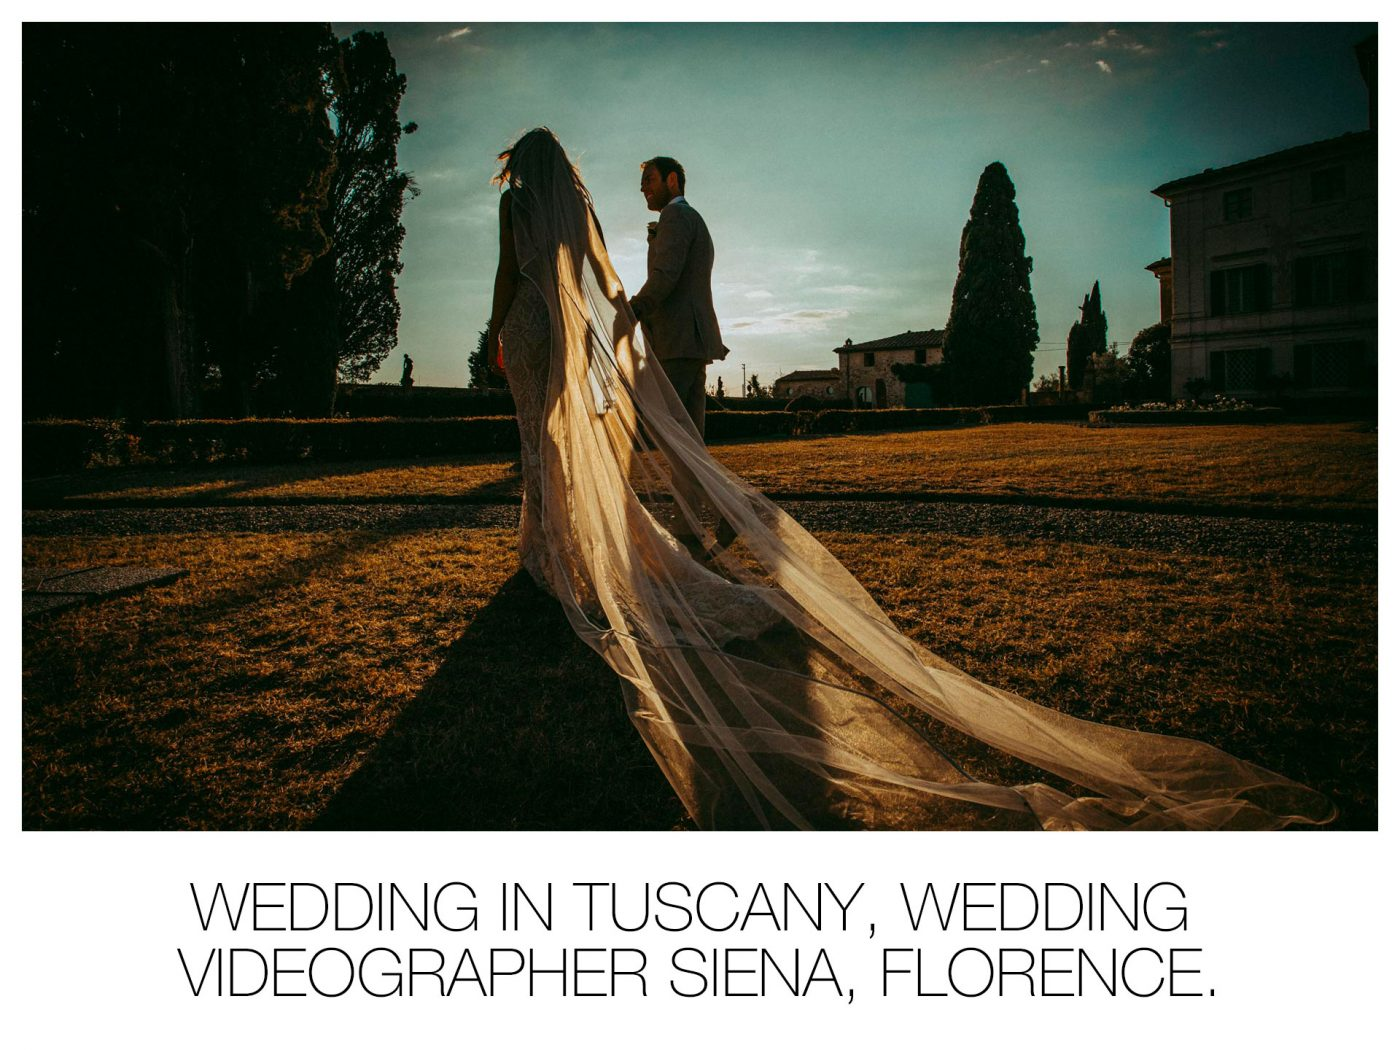 Wedding in Tuscany, Wedding Videographer Siena, Florence.